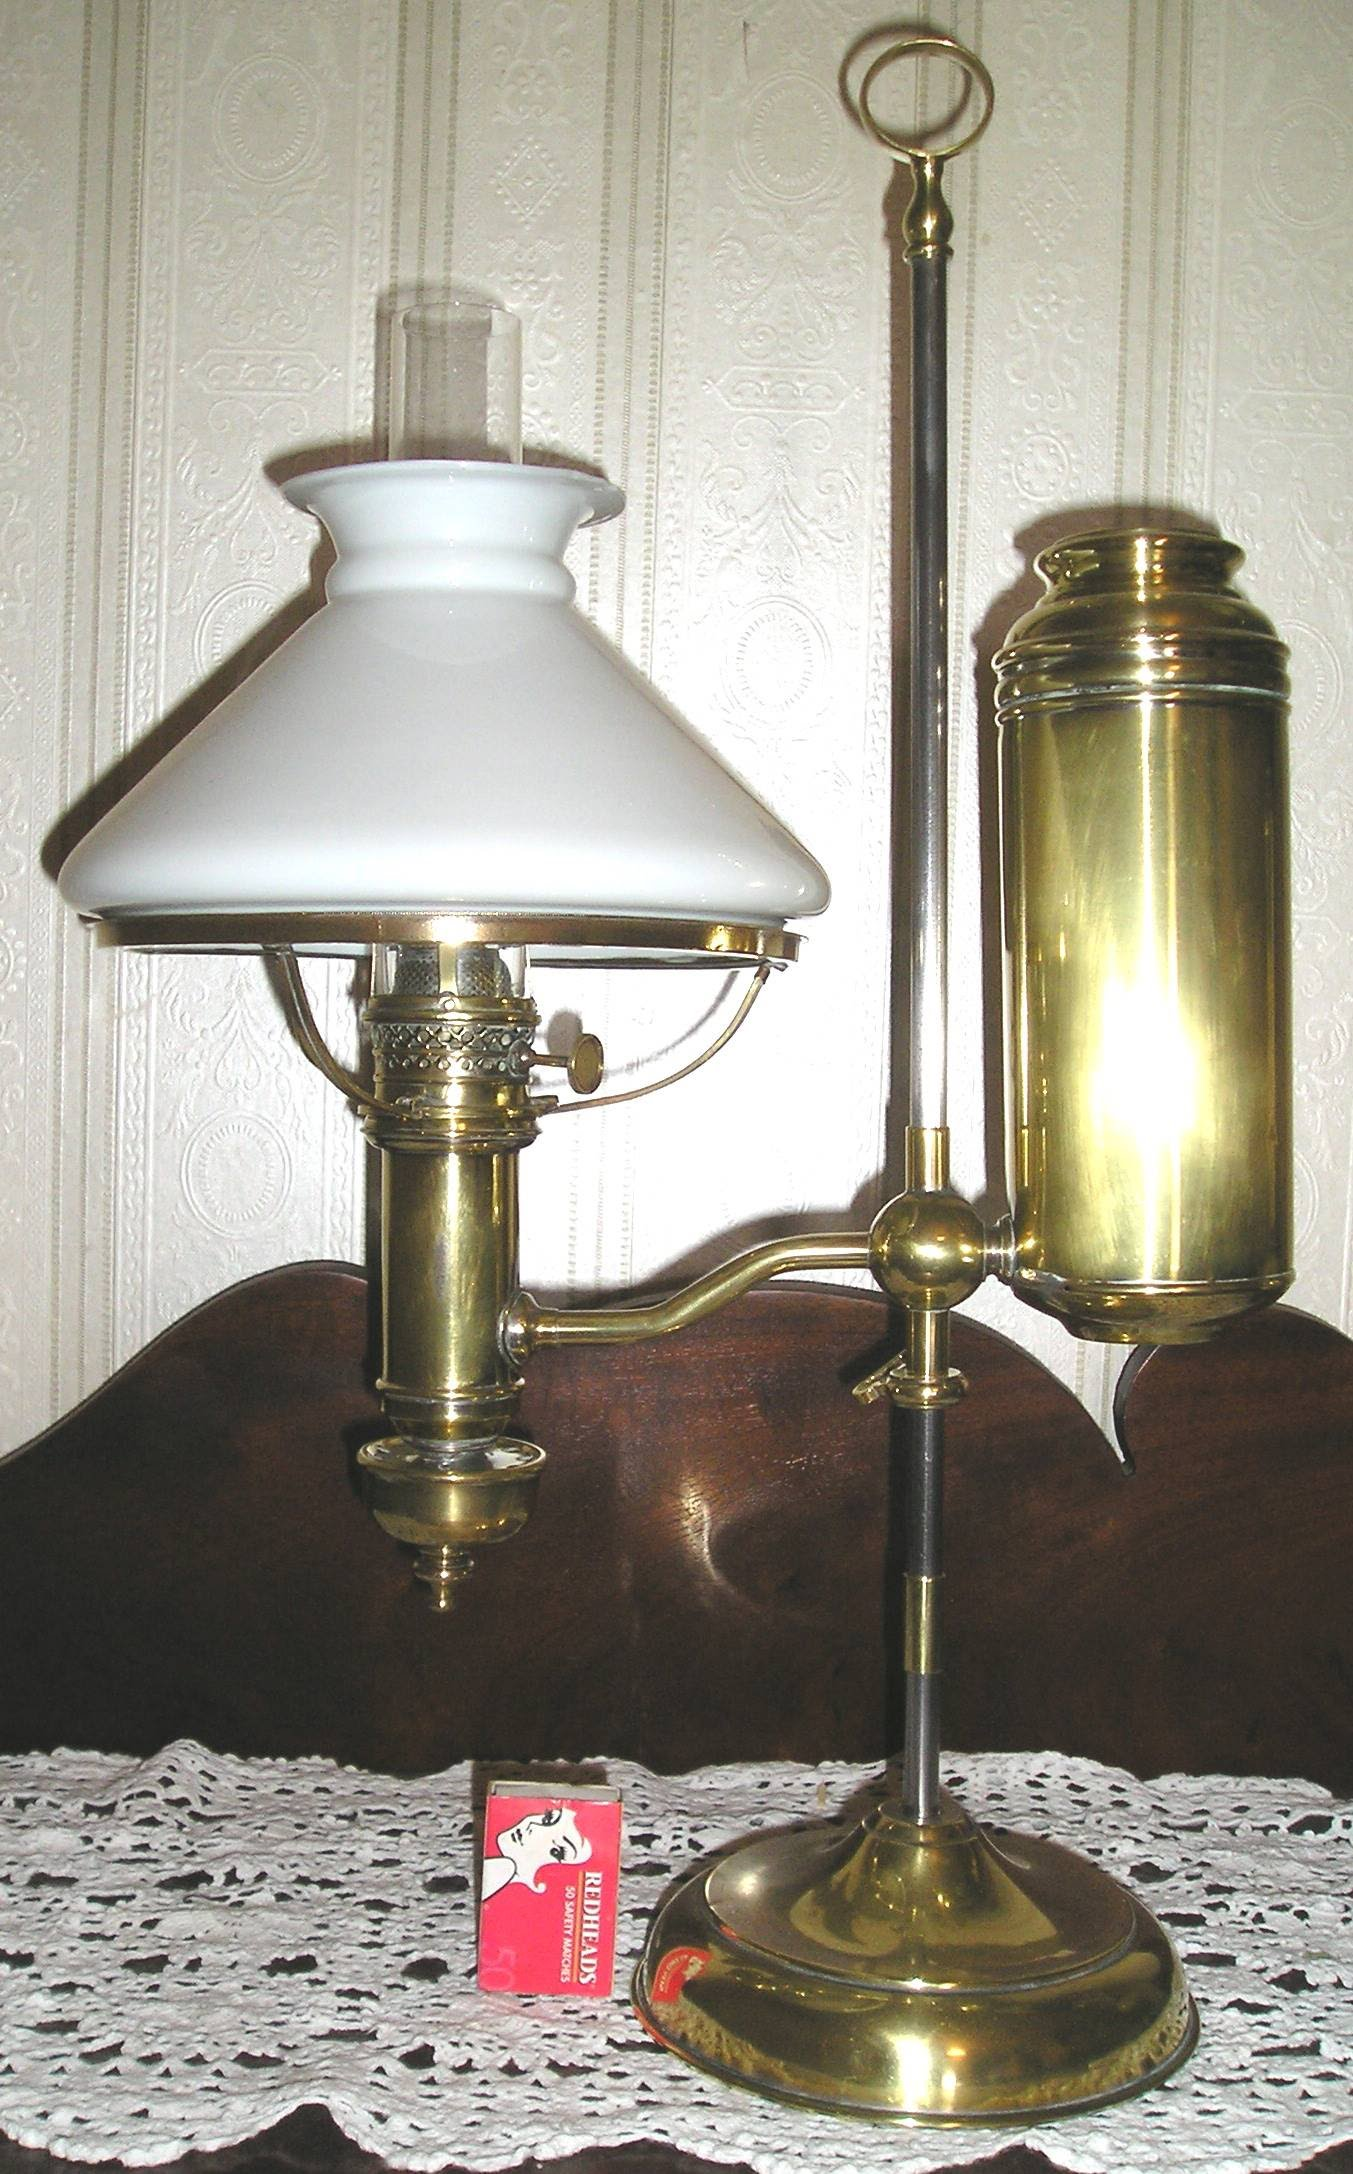 gb lamp usa desk prod lamps in en brass reading main